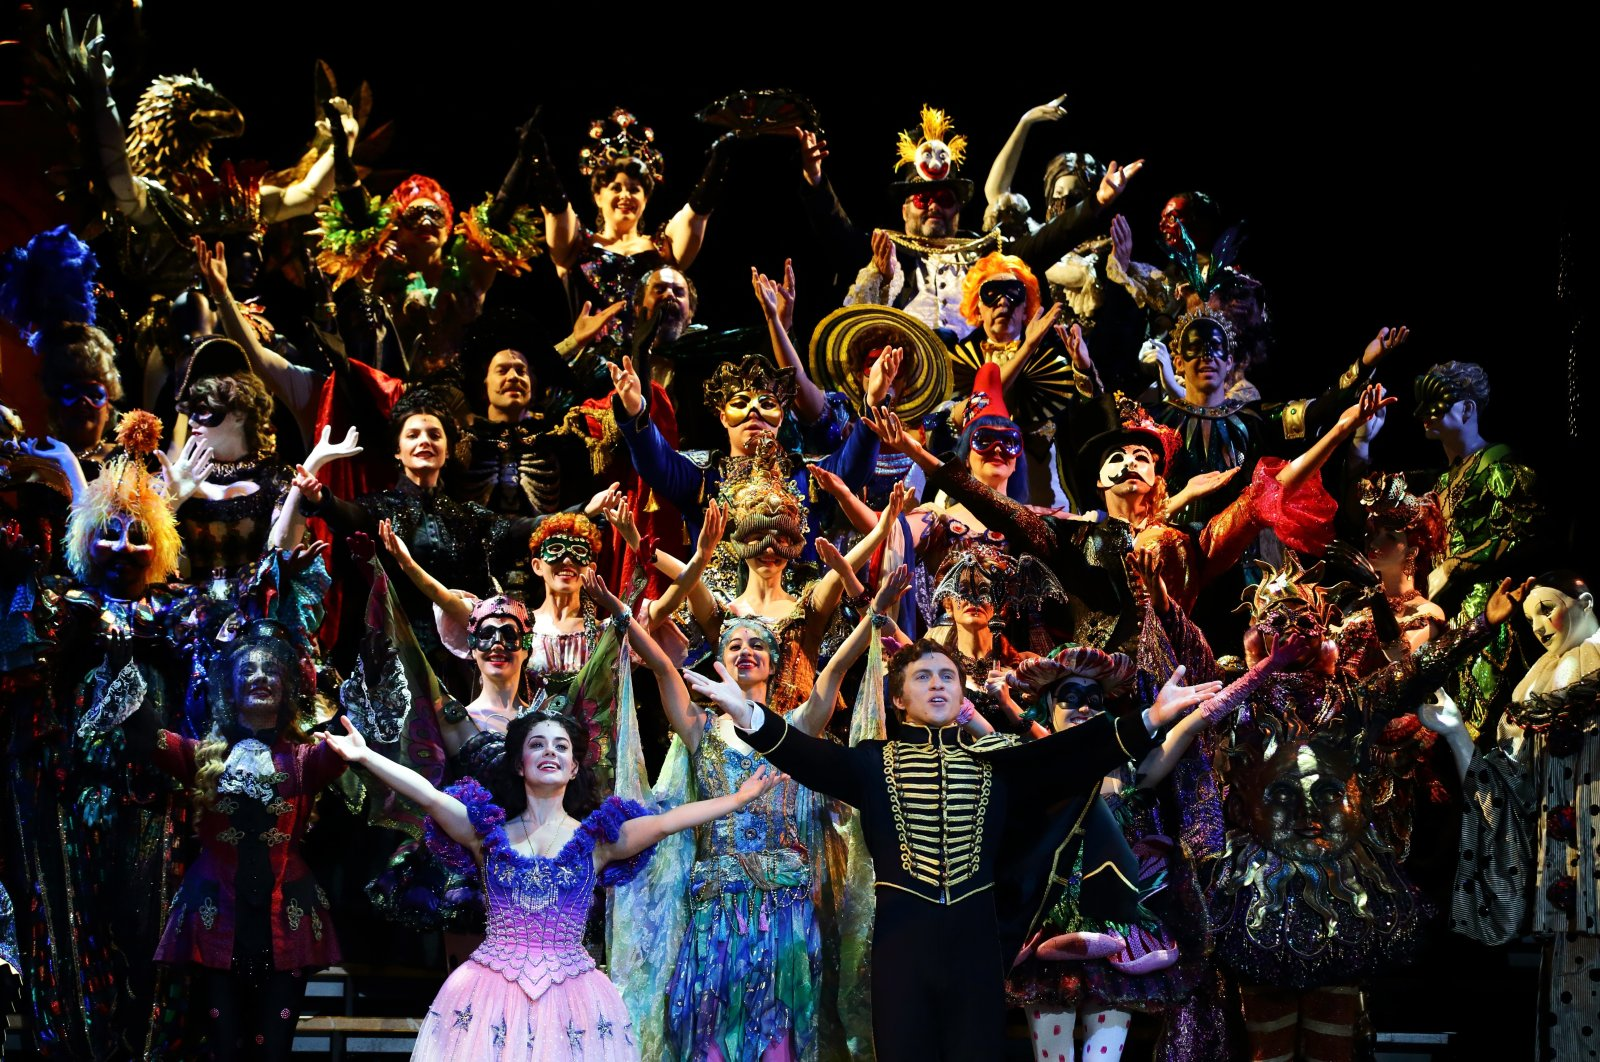 Cast members for The Phantom Of The Opera perform on stage during a media preview at the Sands Theatre at Marina Bay Sands, Singapore, April 25, 2019. (Getty Images)